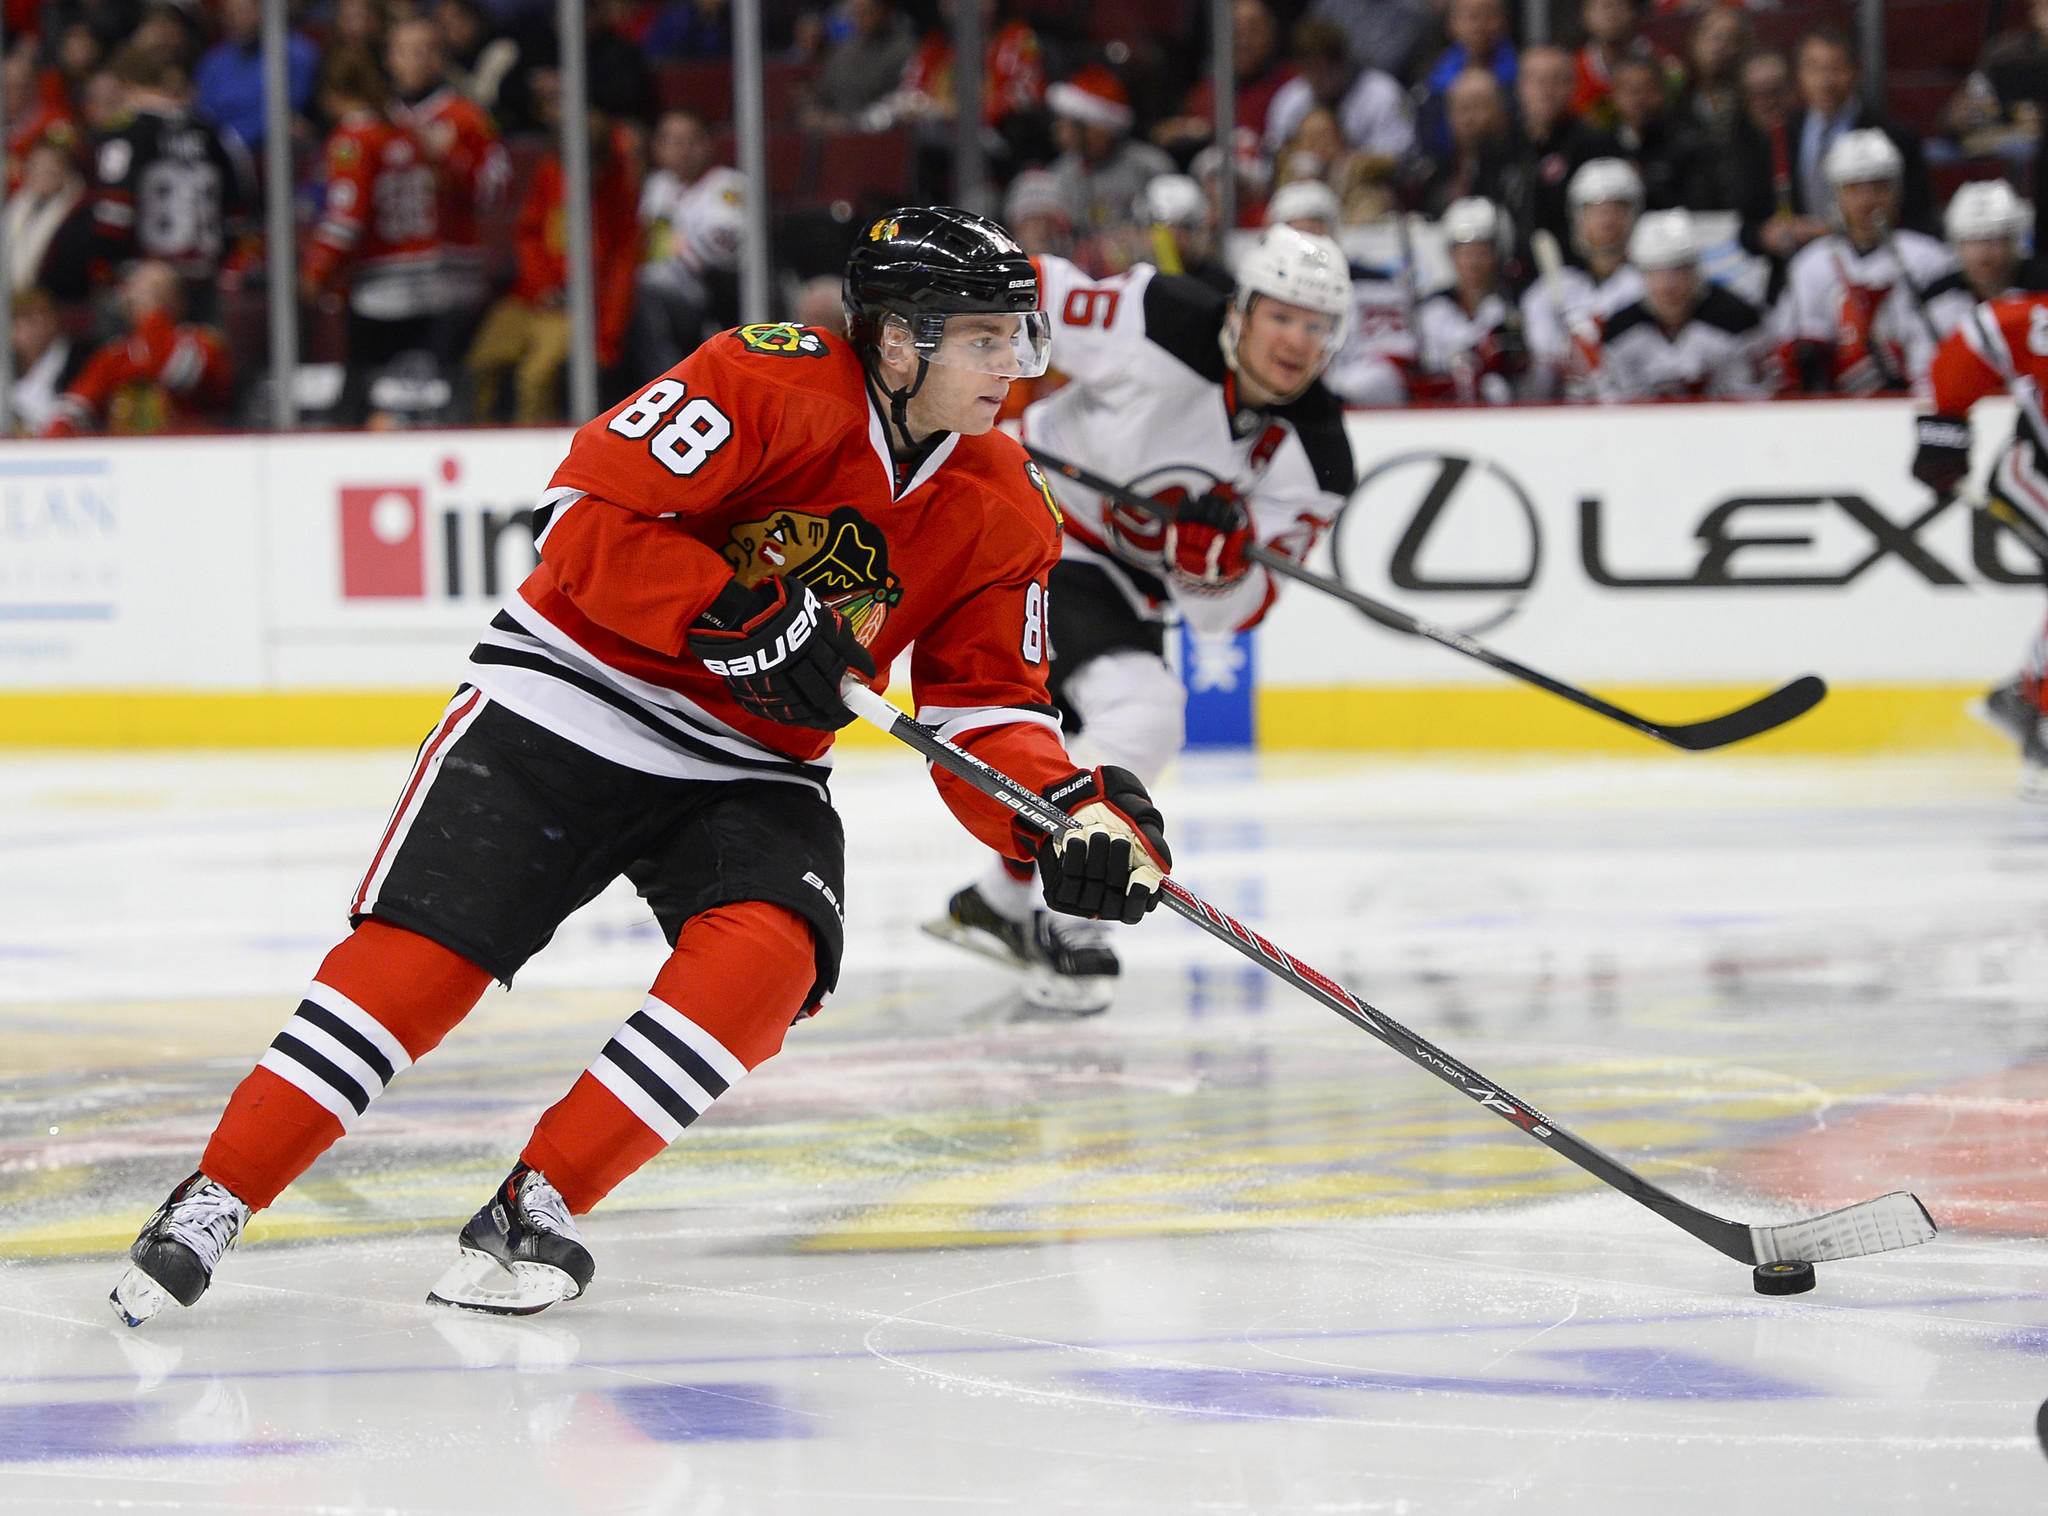 Hawks forward Patrick Kane has an admirer in Devils star Jaromir Jagr.